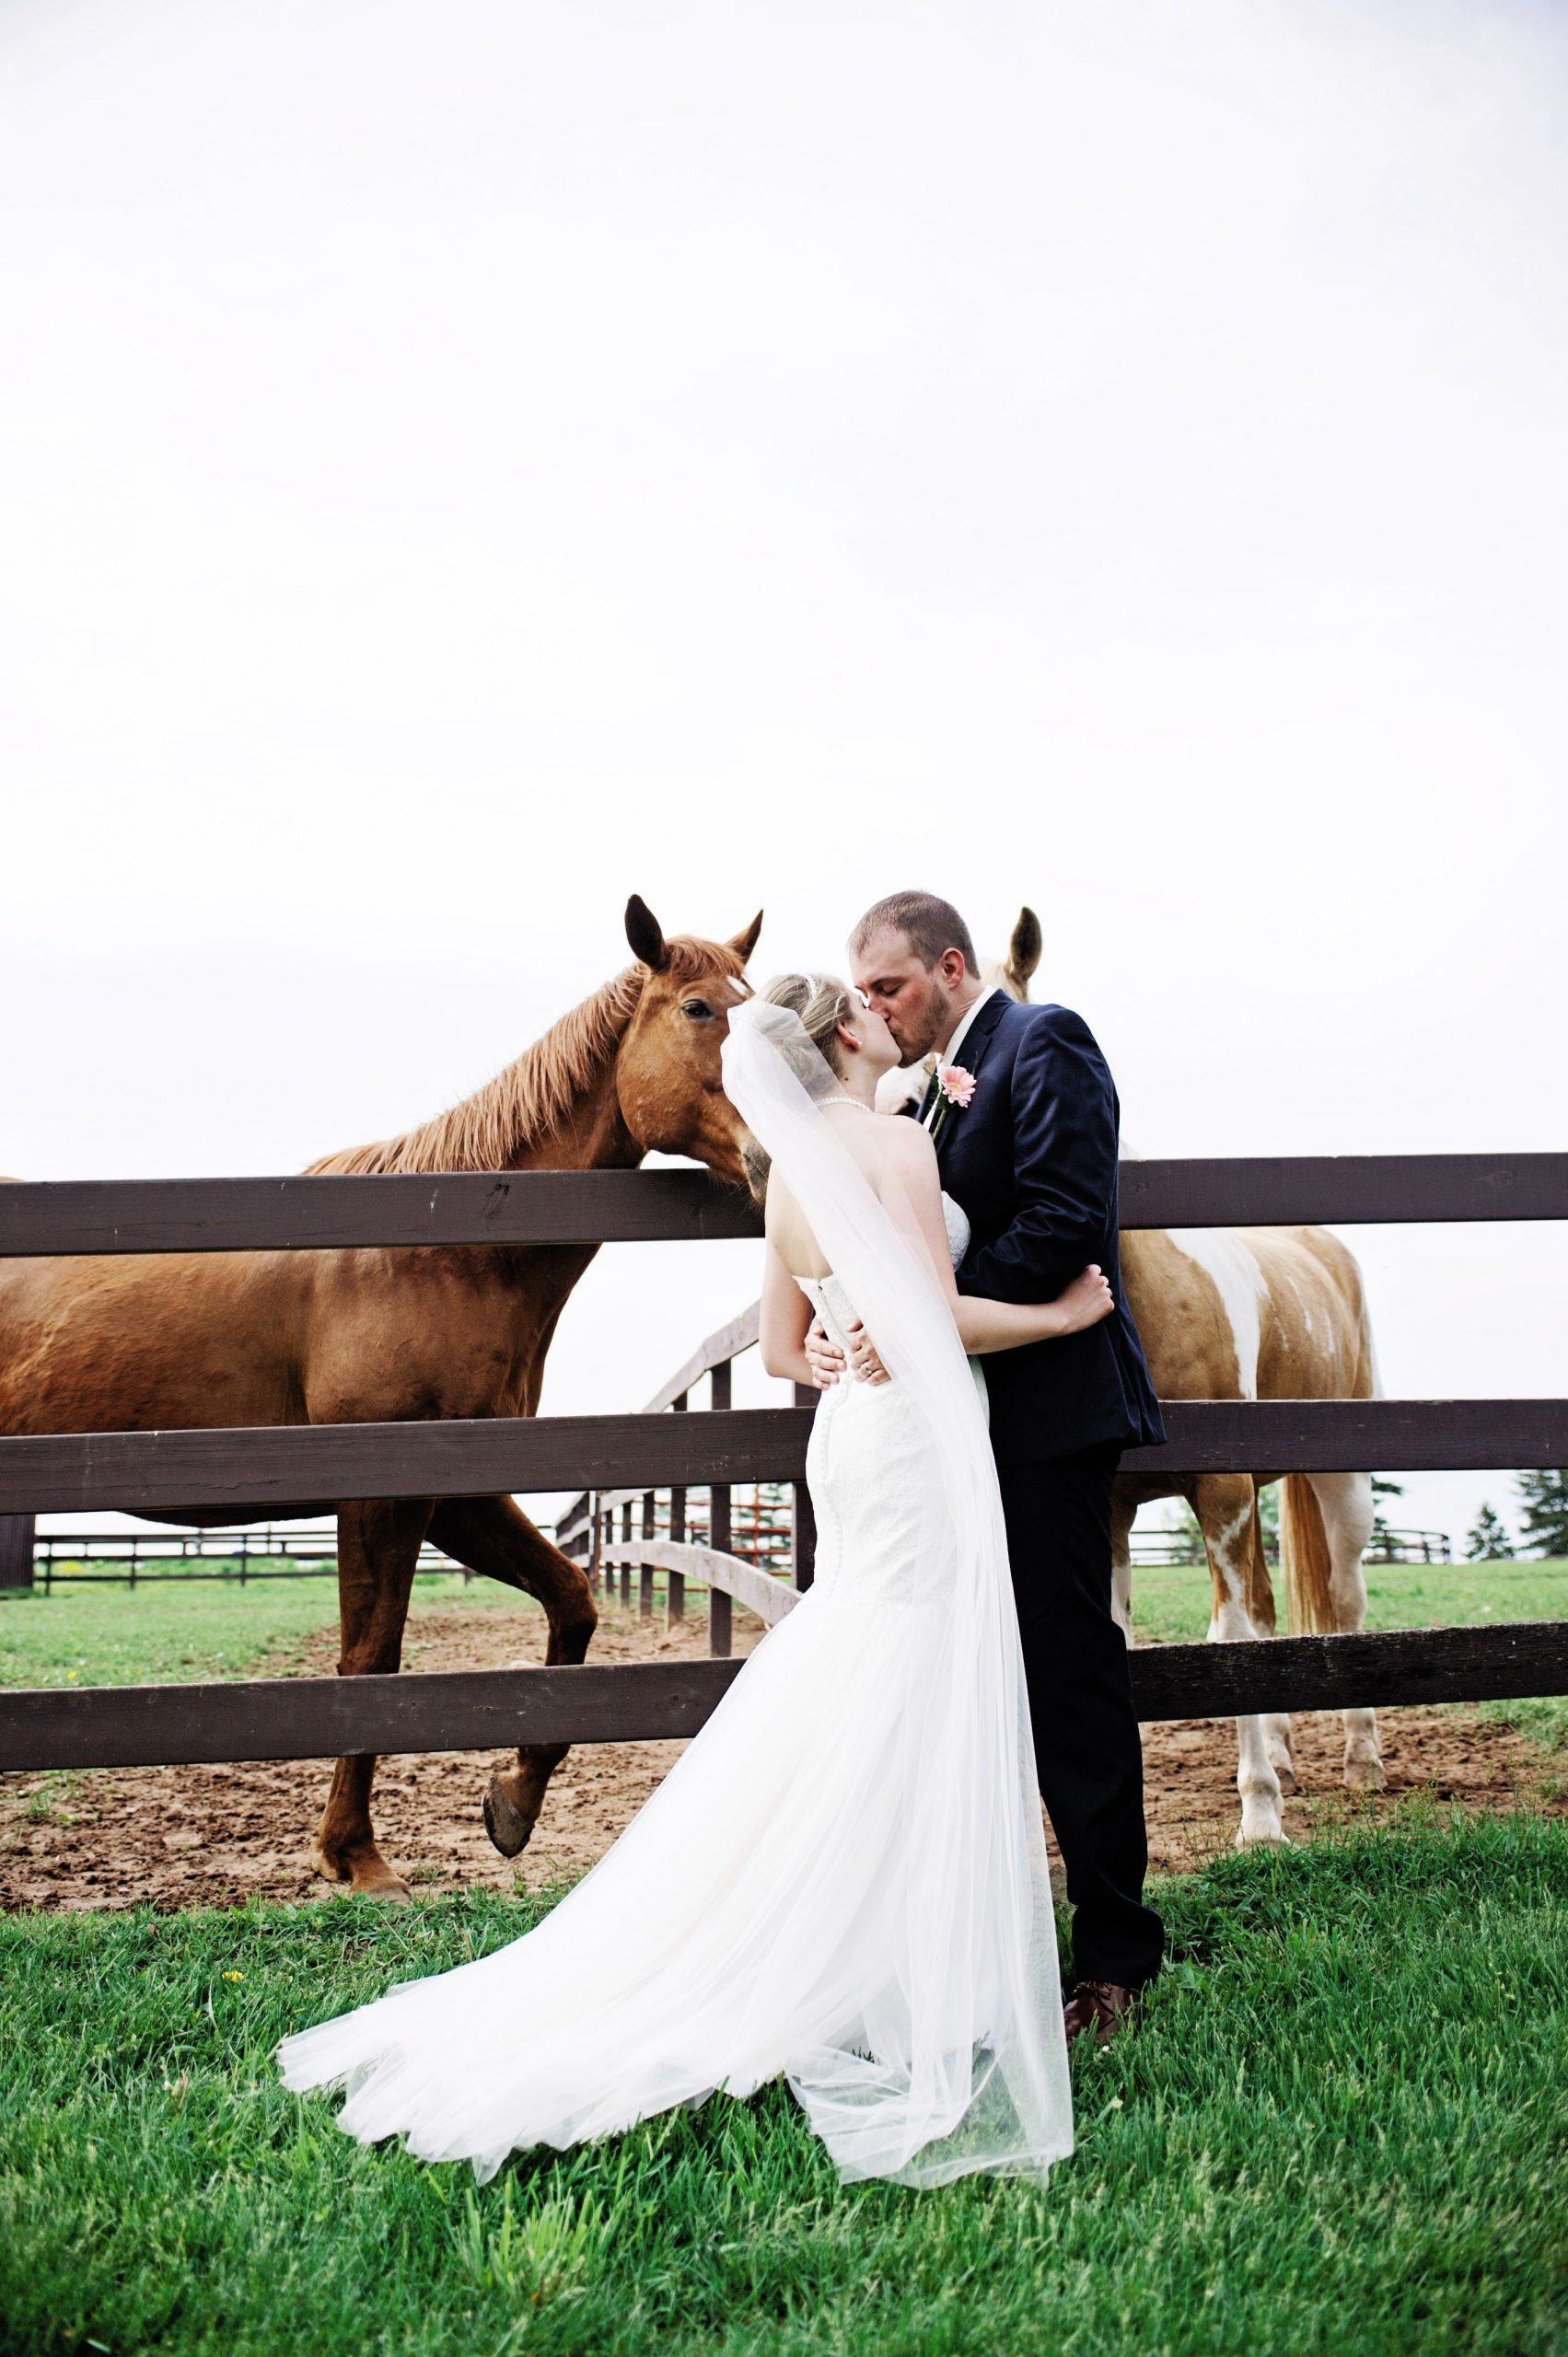 horses of Lakeview Farms in York, PA hope to get in on the action of this photo taken by Lovefusion Photography. Featured in Dream Weddings.